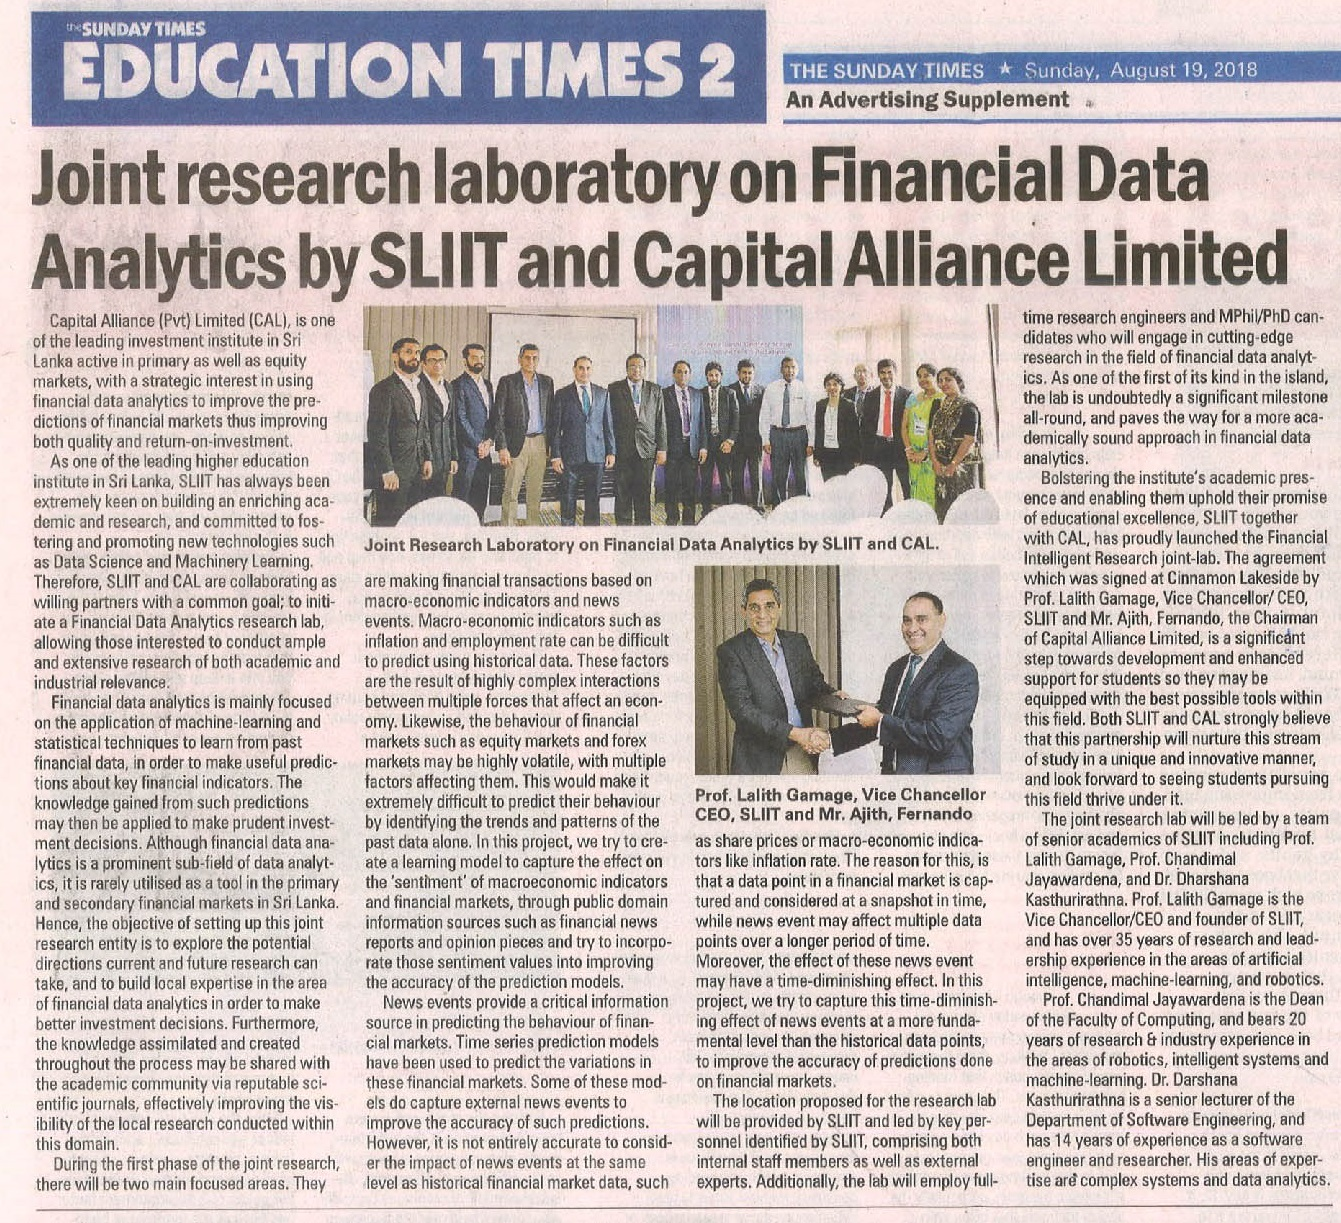 Joint-Research-Laboratory-on-Financial-Data-Analytics-by-SLIIT-and-Capital-Alliance-Limited-Sunday-Times-19.08.2018